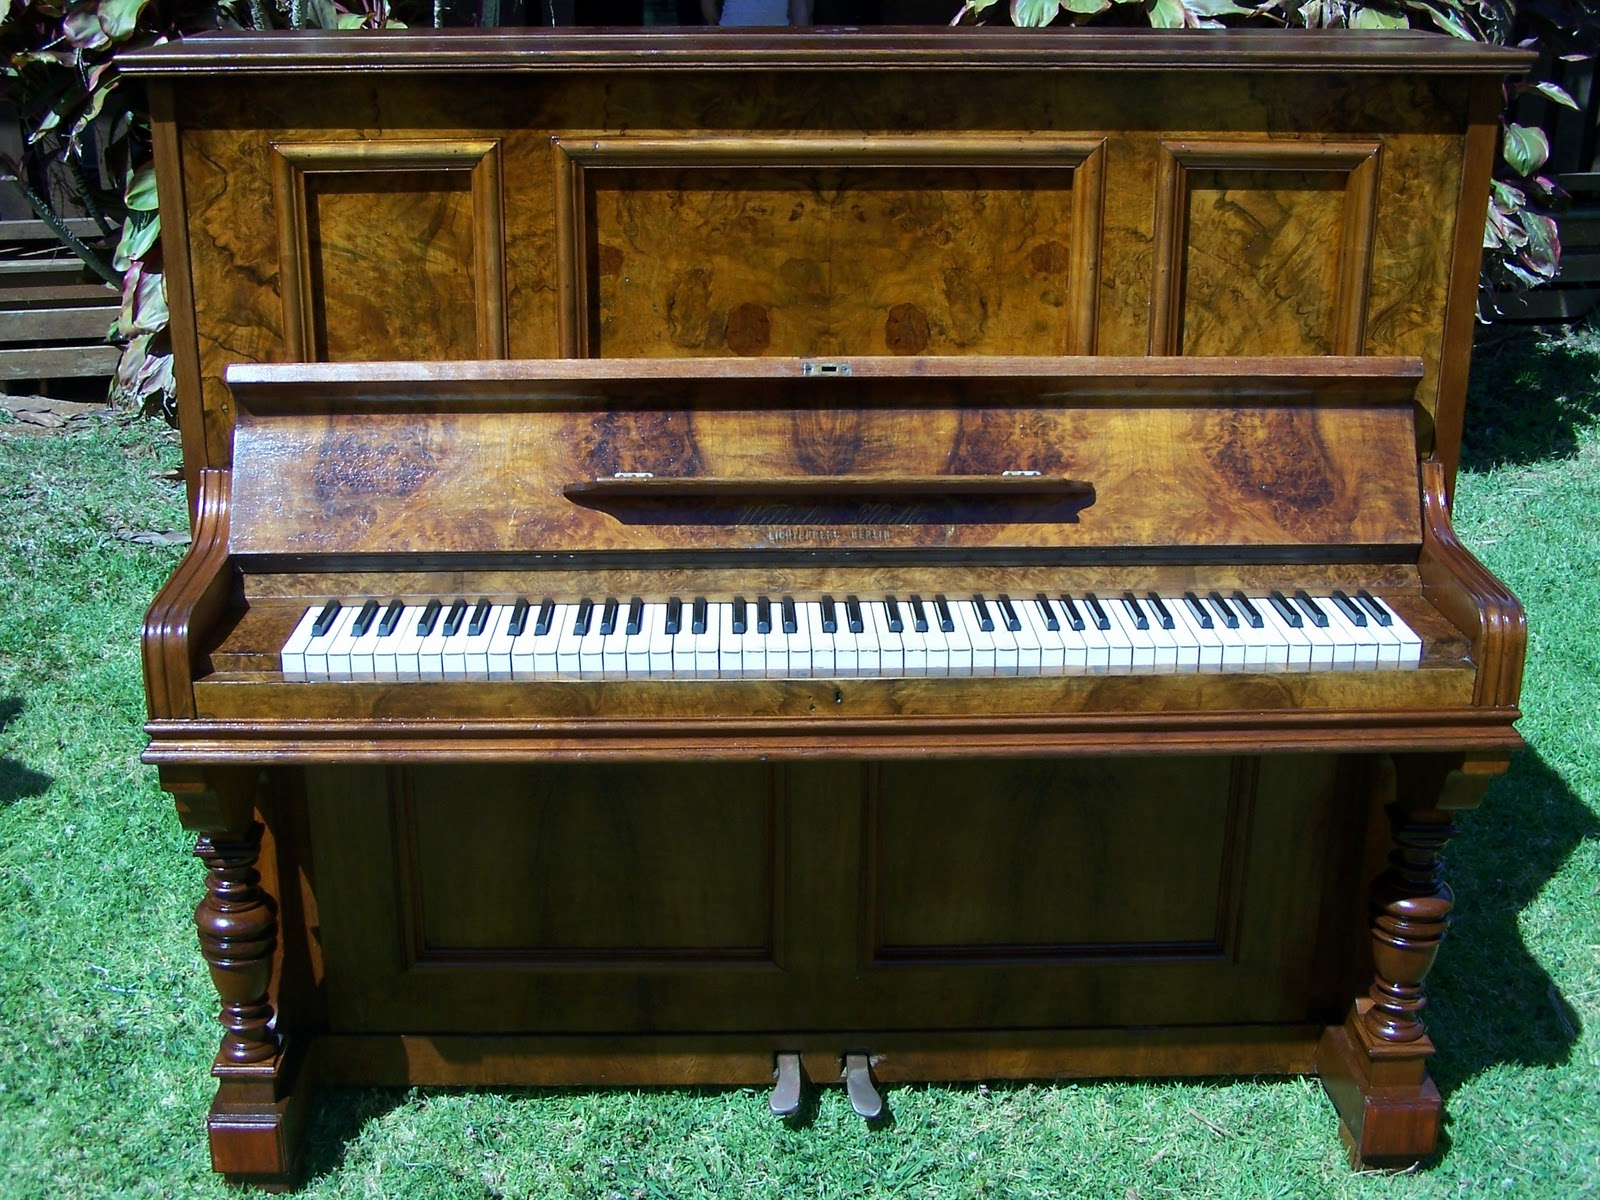 dating old pianos The history of mason & hamlin pianos dating back to the mid 19 th century as for the age-old question 'mason & hamlin vs steinway'.